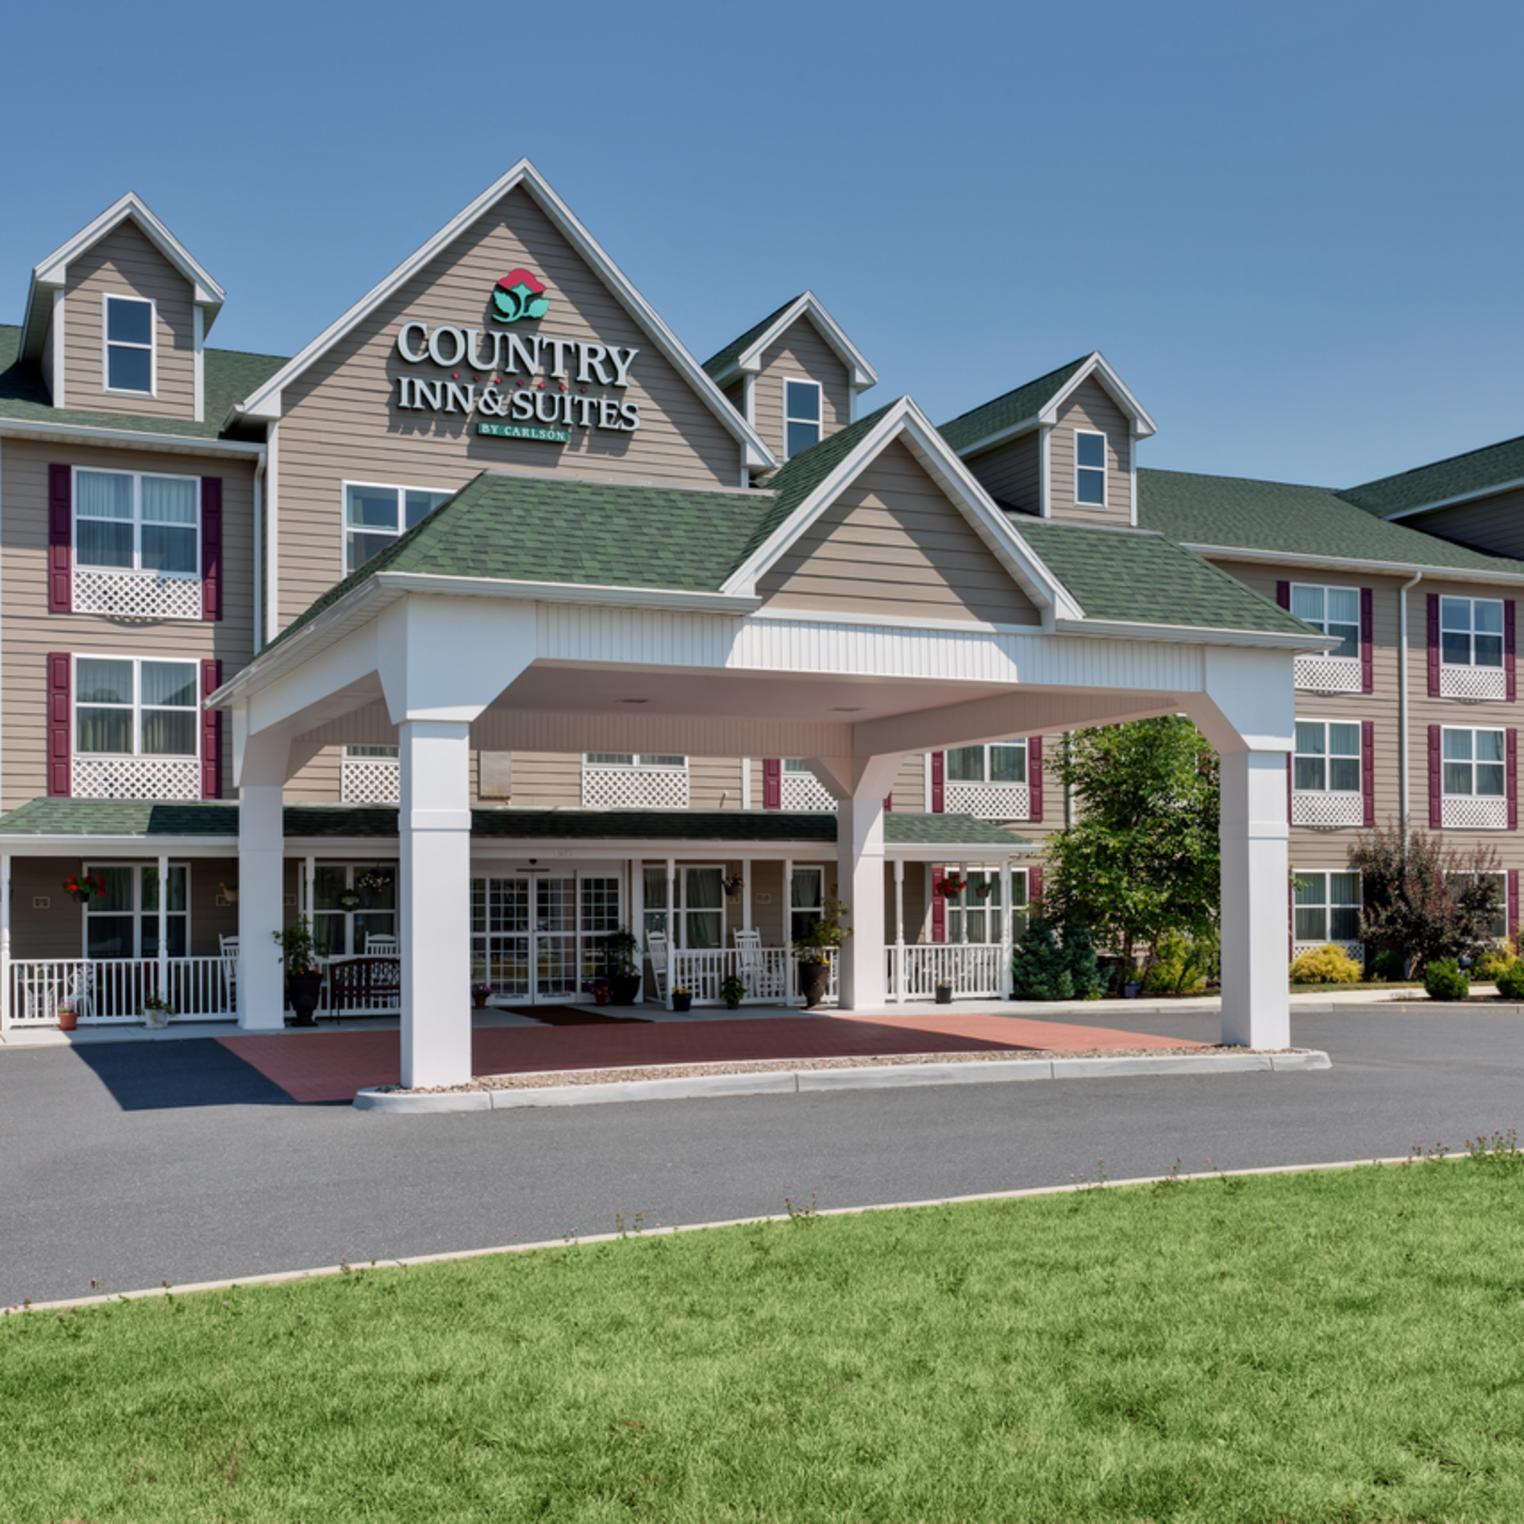 Country Inn and Suites Front Exterior Daytime